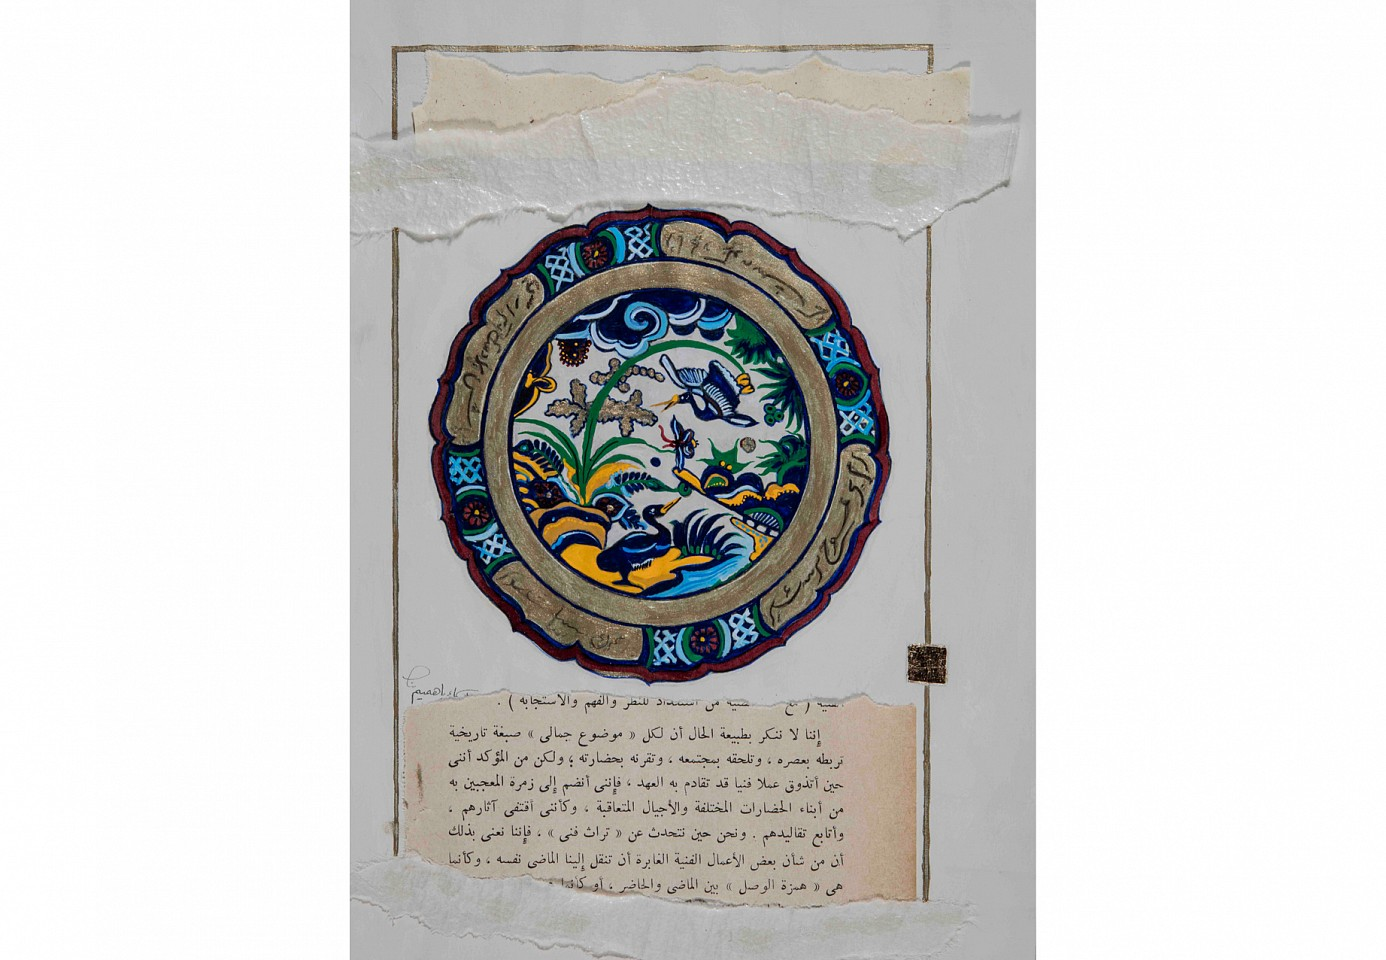 """<p><span class=""""viewer-caption-artist"""">Asma Bahamim</span></p> <p><span class=""""viewer-caption-title""""><i>Link</i></span>, <span class=""""viewer-caption-year"""">2016</span></p> <p><span class=""""viewer-caption-media"""">Gouache, hand painting, collage gold leaf and acrylic ink on paper</span></p> <p><span class=""""viewer-caption-dimensions"""">23 x 30 cm</span></p> <p><span class=""""viewer-caption-description"""">From Dreams Philosopher Series</span></p> <p><span class=""""viewer-caption-inventory"""">ABM0015</span></p> <p><span class=""""viewer-caption-aux""""></span></p>"""